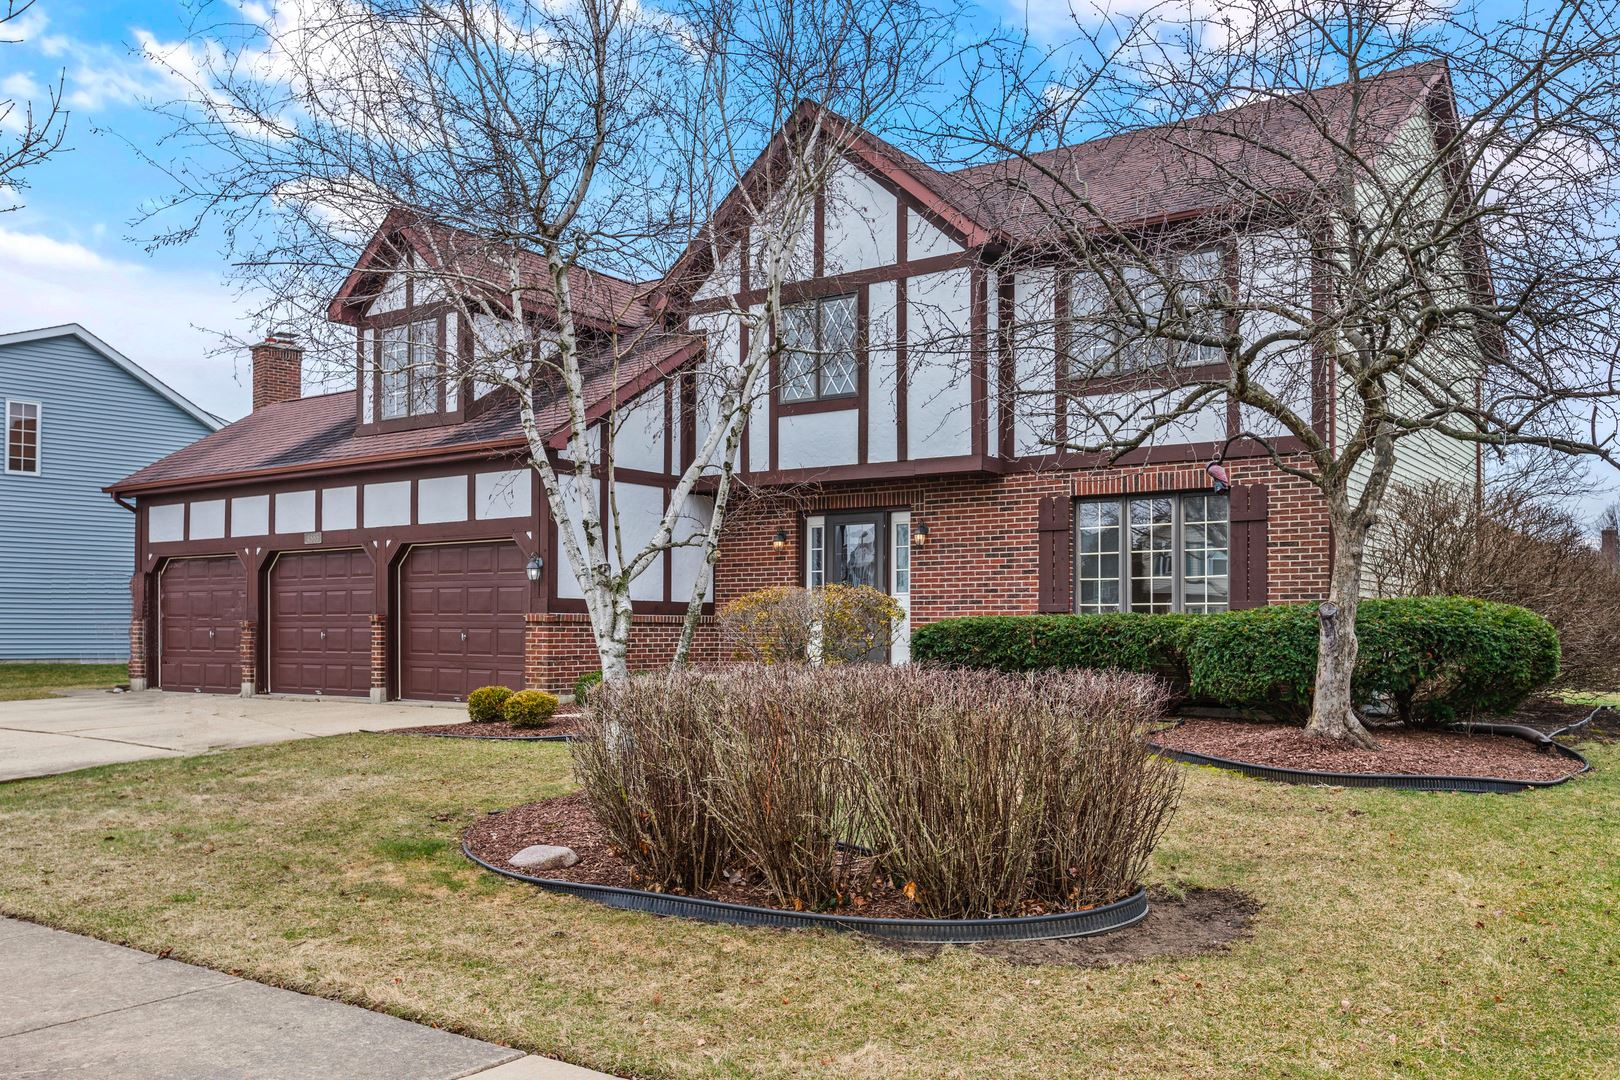 4885 Dukesberry Lane, Hoffman Estates, IL 60010 - #: 10707220